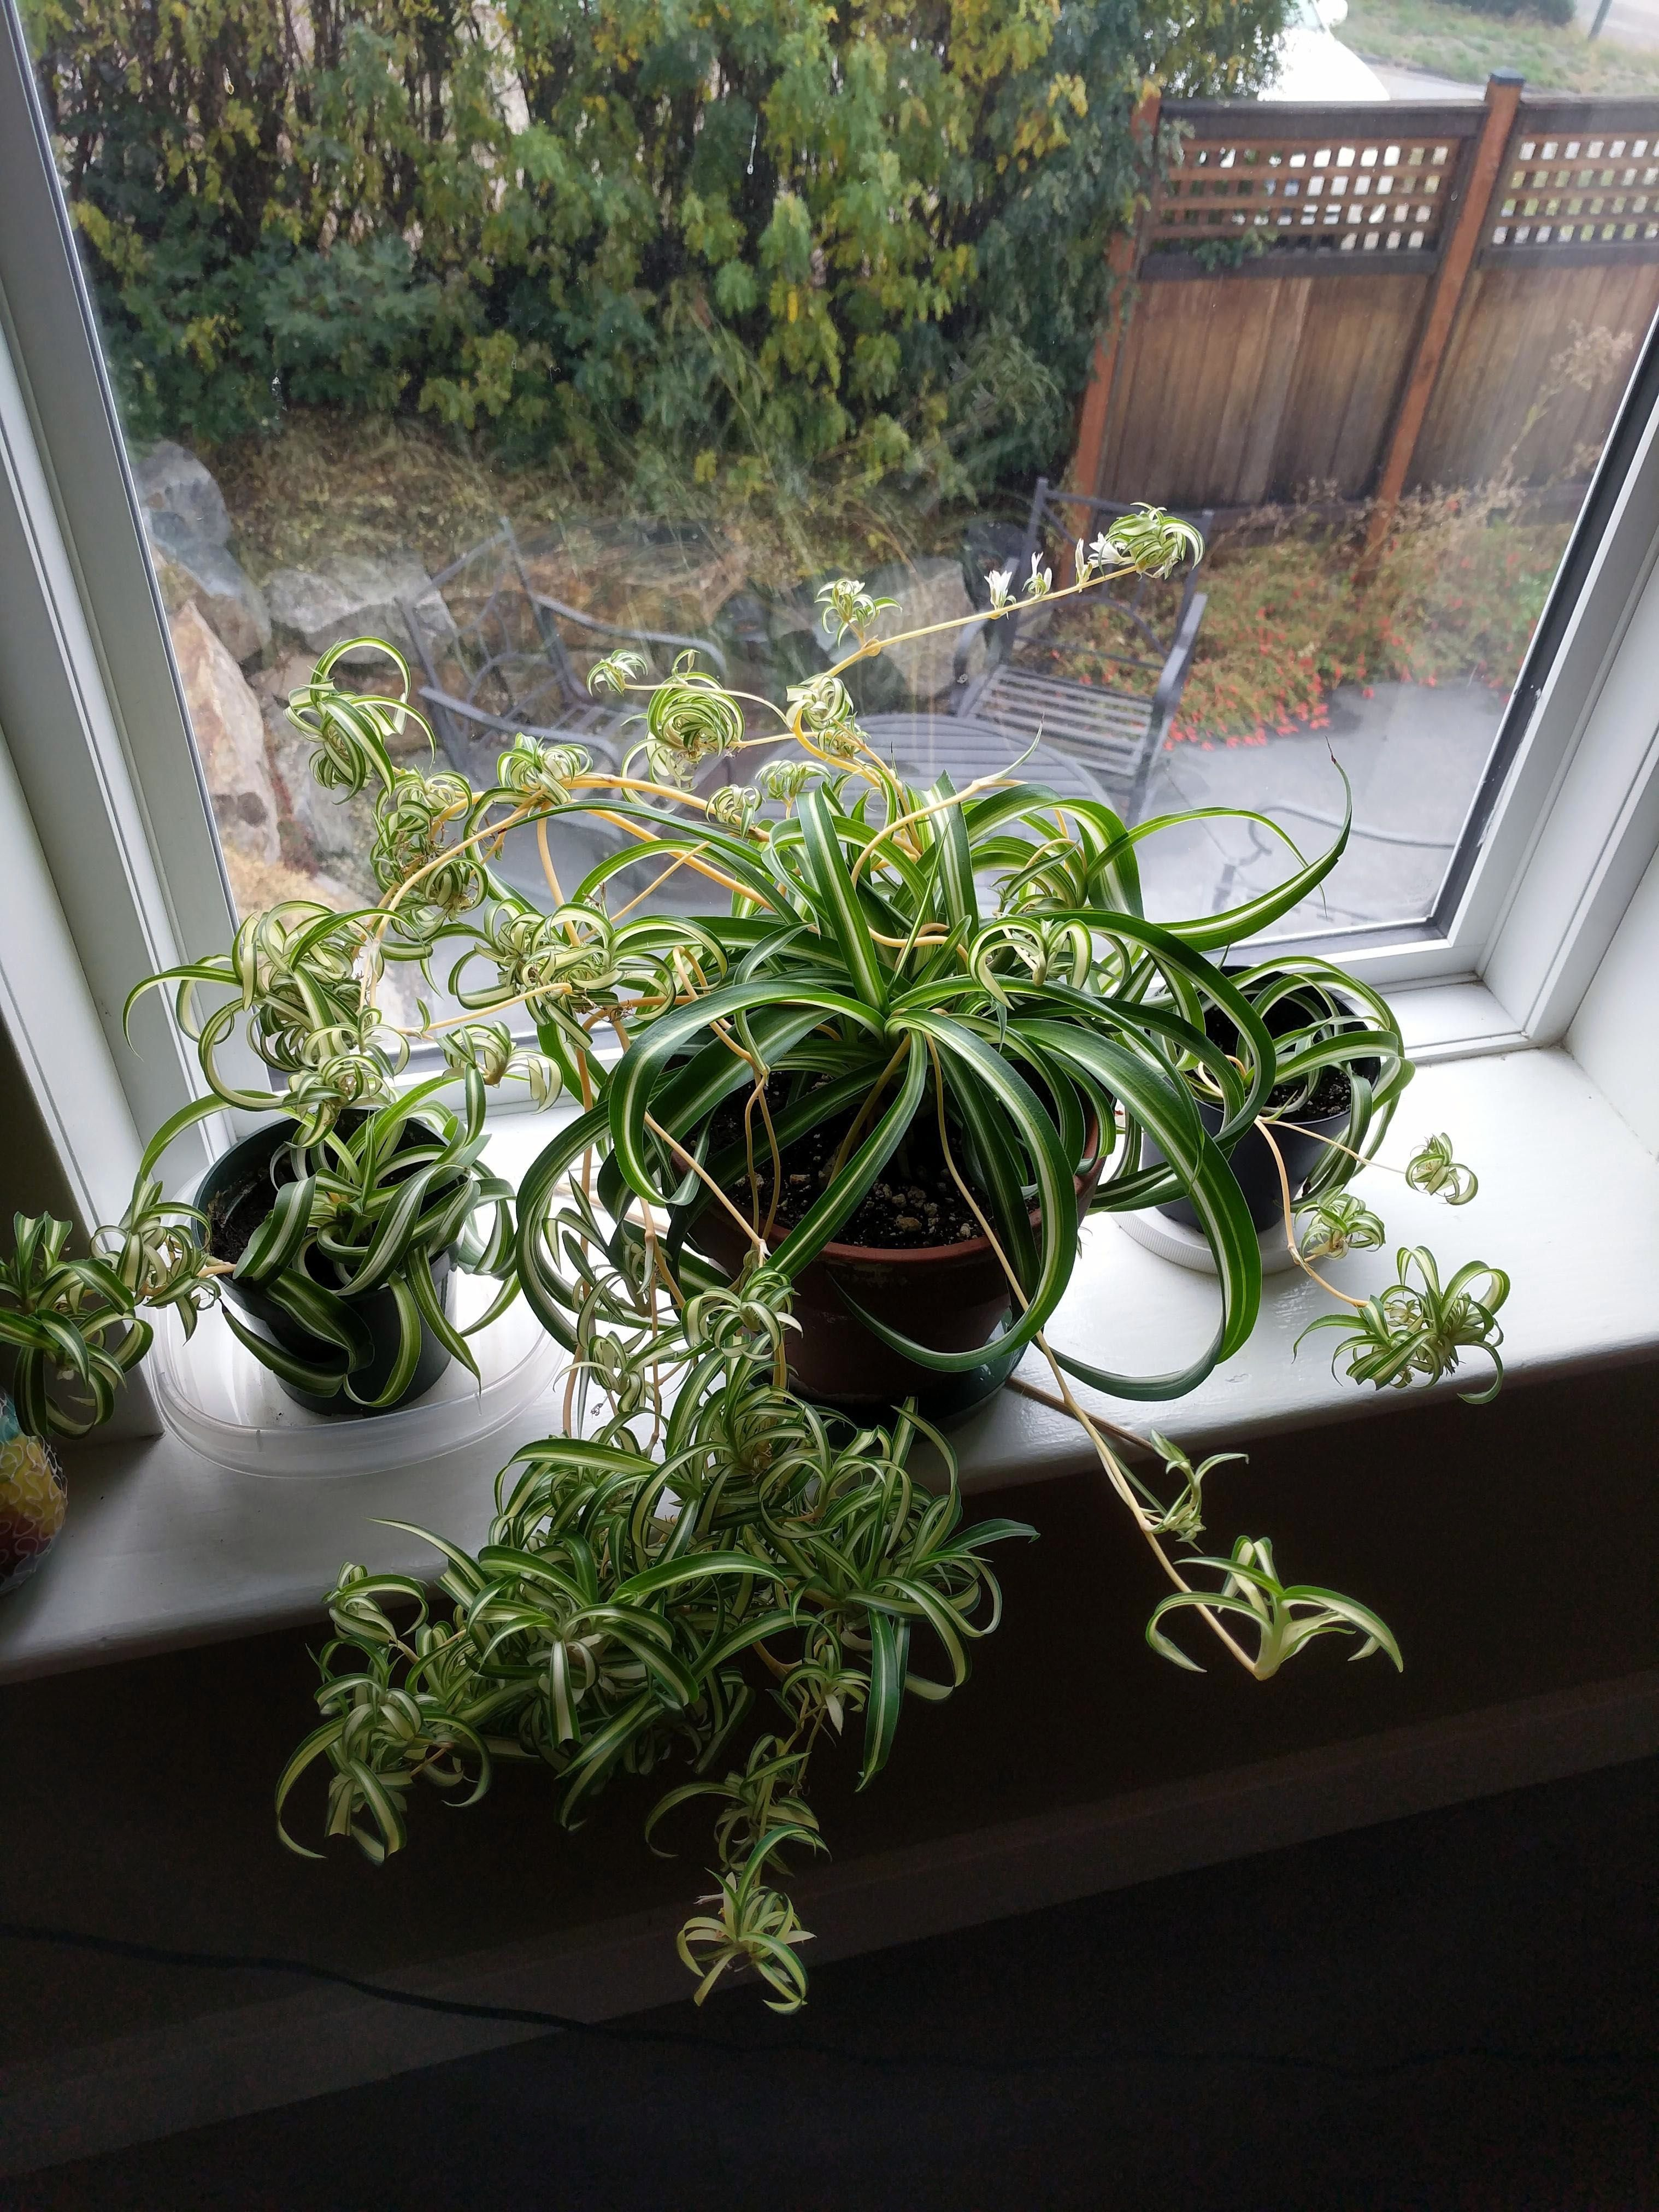 Crawler Plants And Cats Why Are Cats Eating Spider Plant